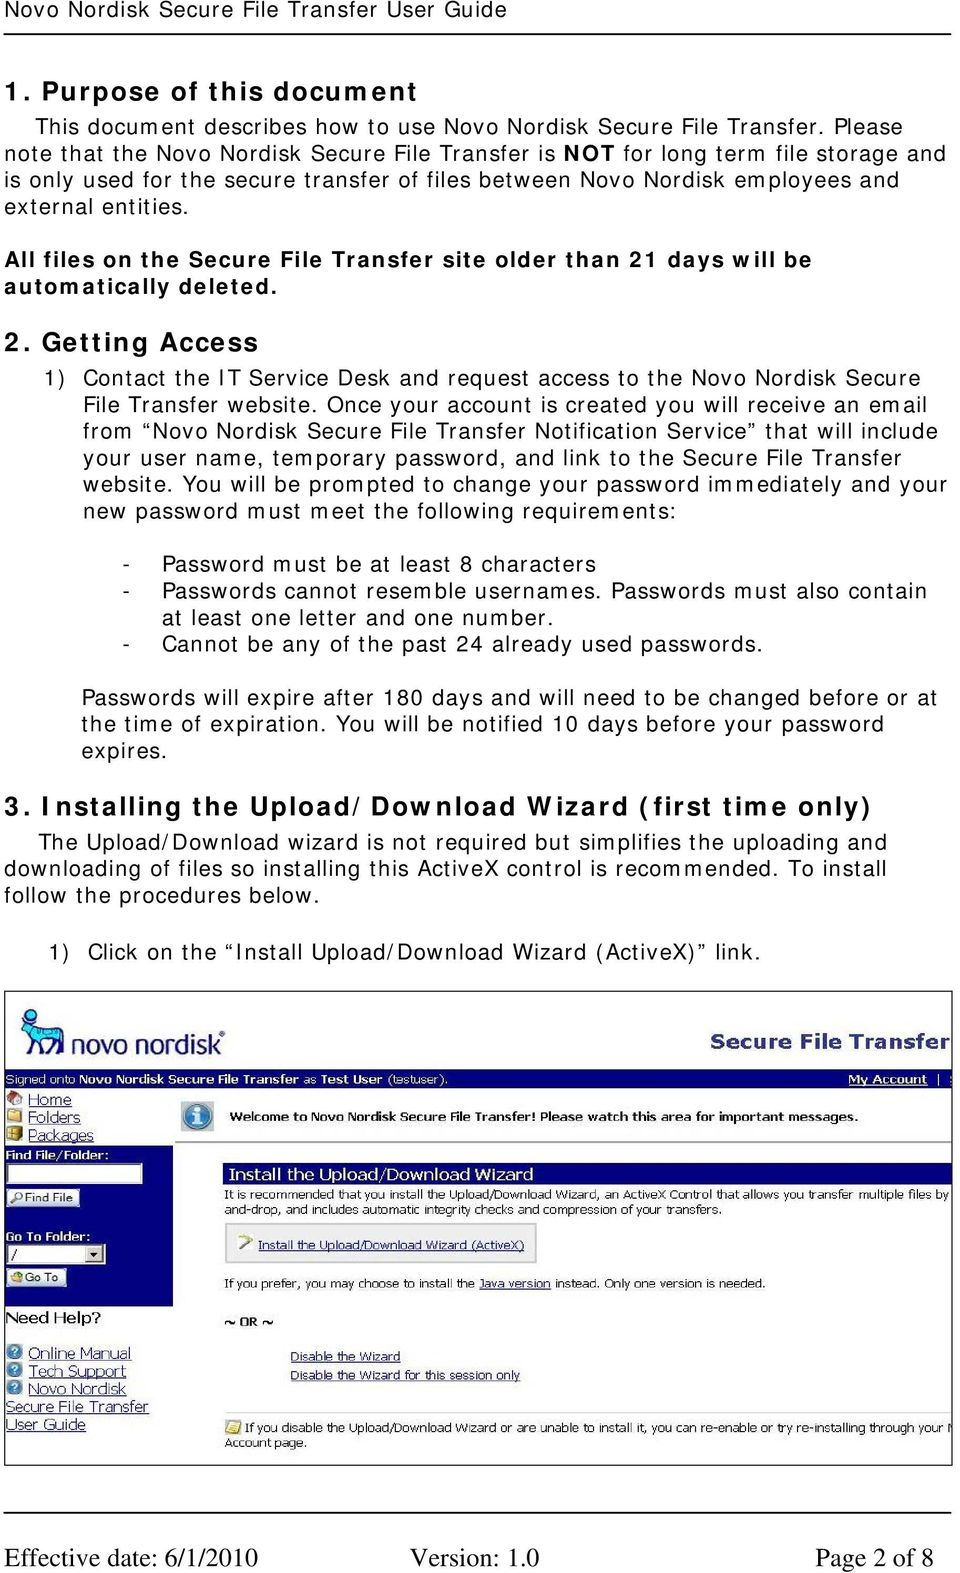 All files on the Secure File Transfer site older than 21 days will be automatically deleted. 2. Getting Access 1) Contact the IT Service Desk and request access to the Novo Nordisk Secure File Transfer website.